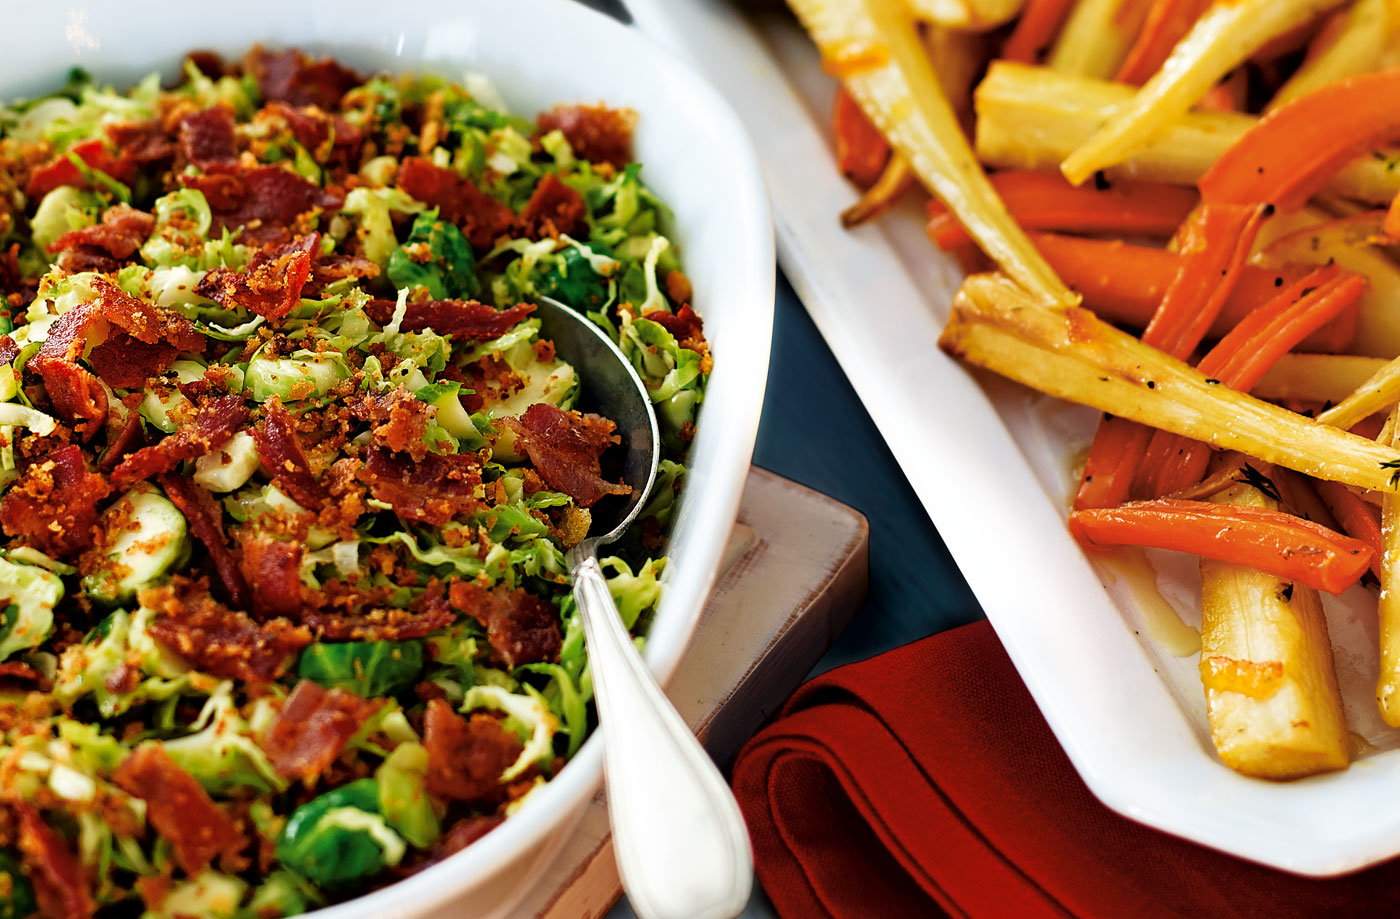 Shredded sprouts with lemon and bacon crumble recipe